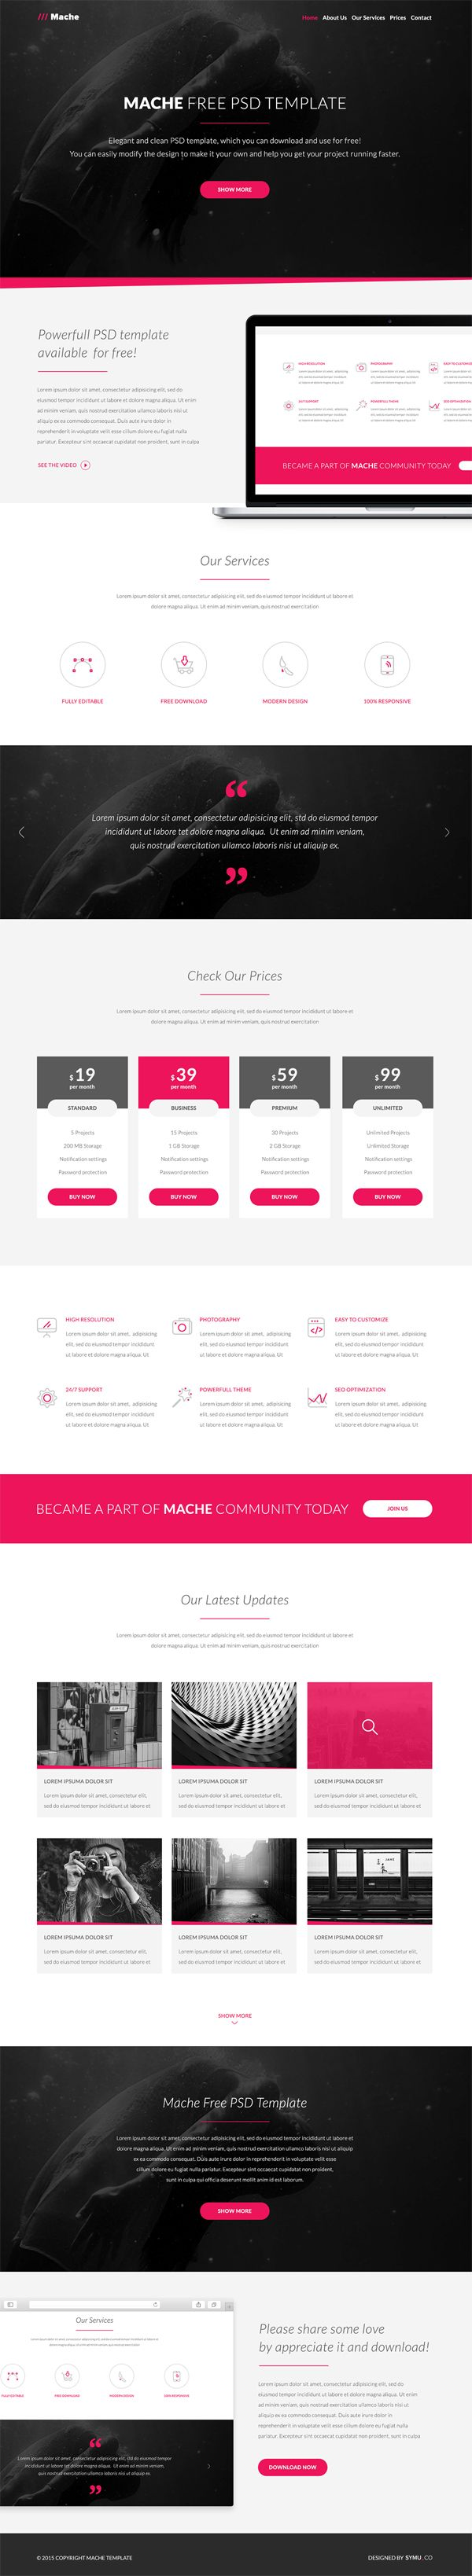 Free One Page PSD Template